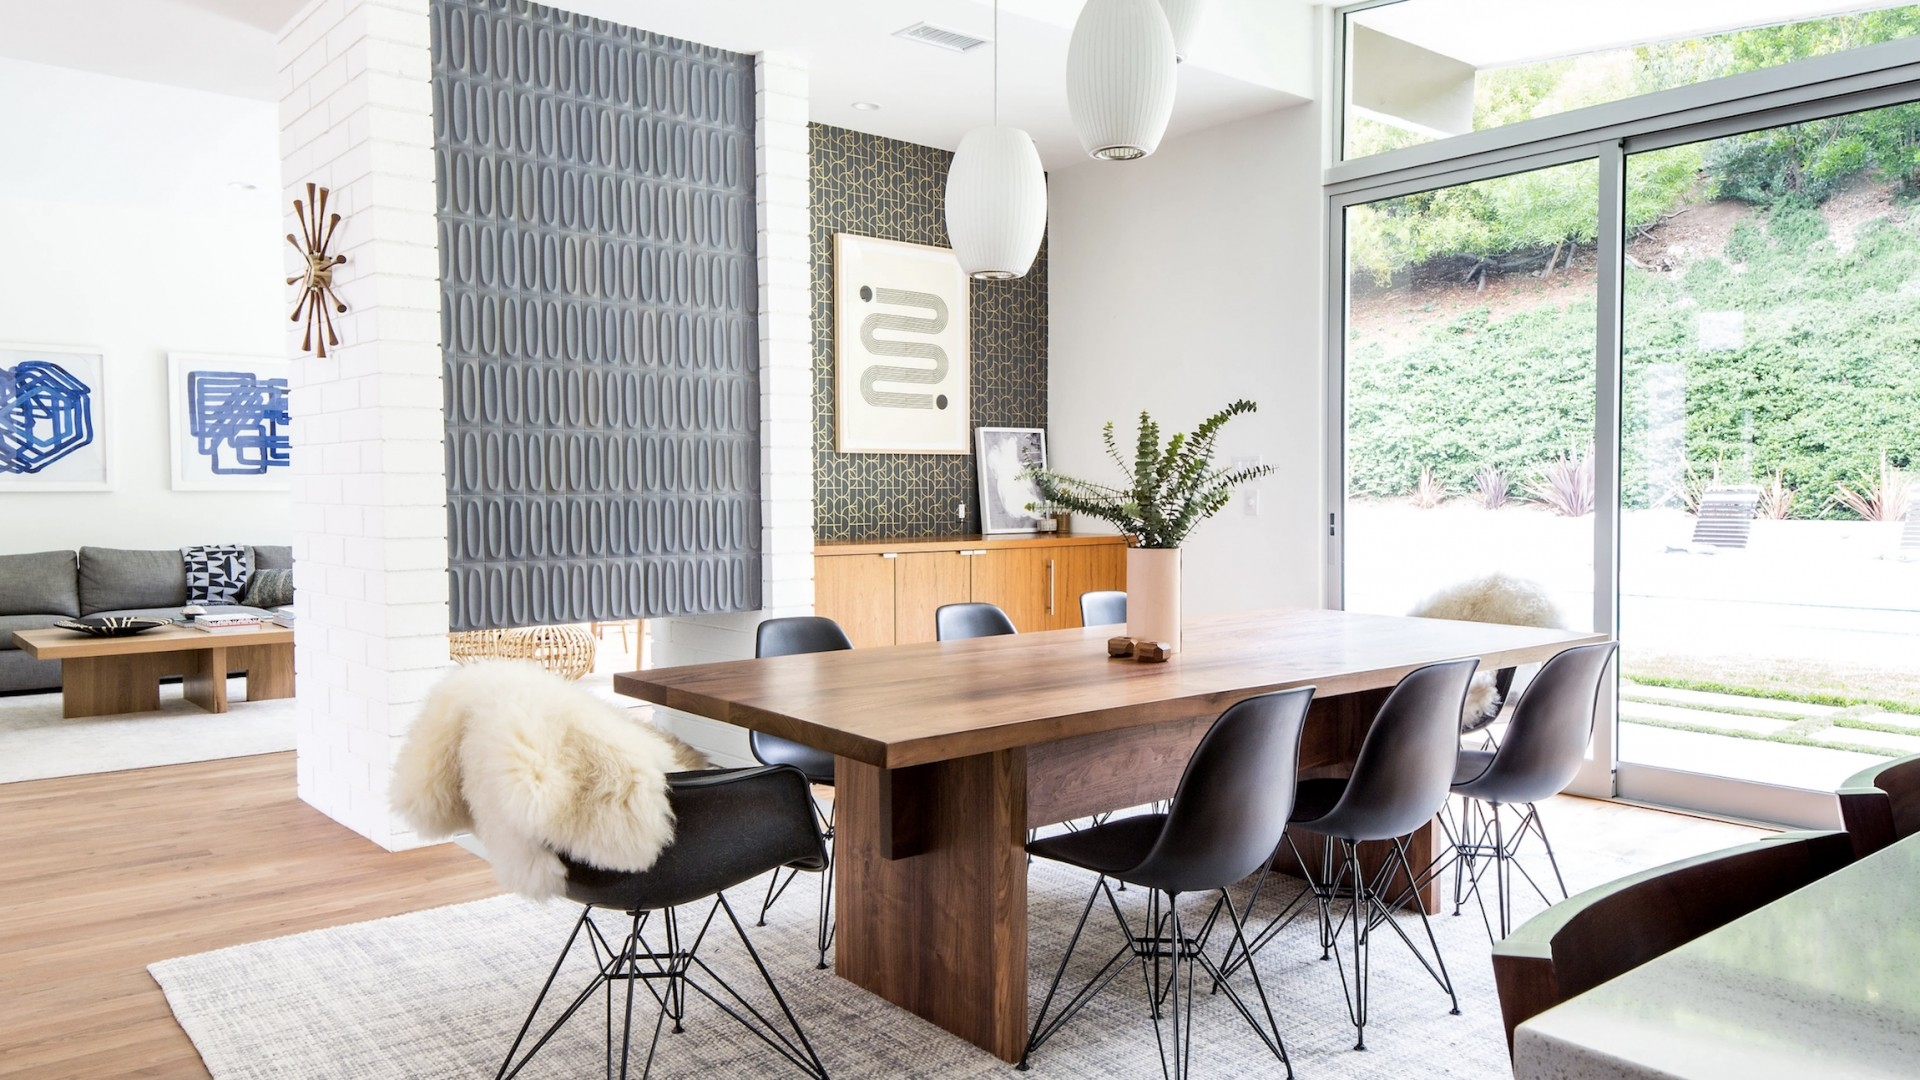 Mid Century Modern Free Wallpaper and Background